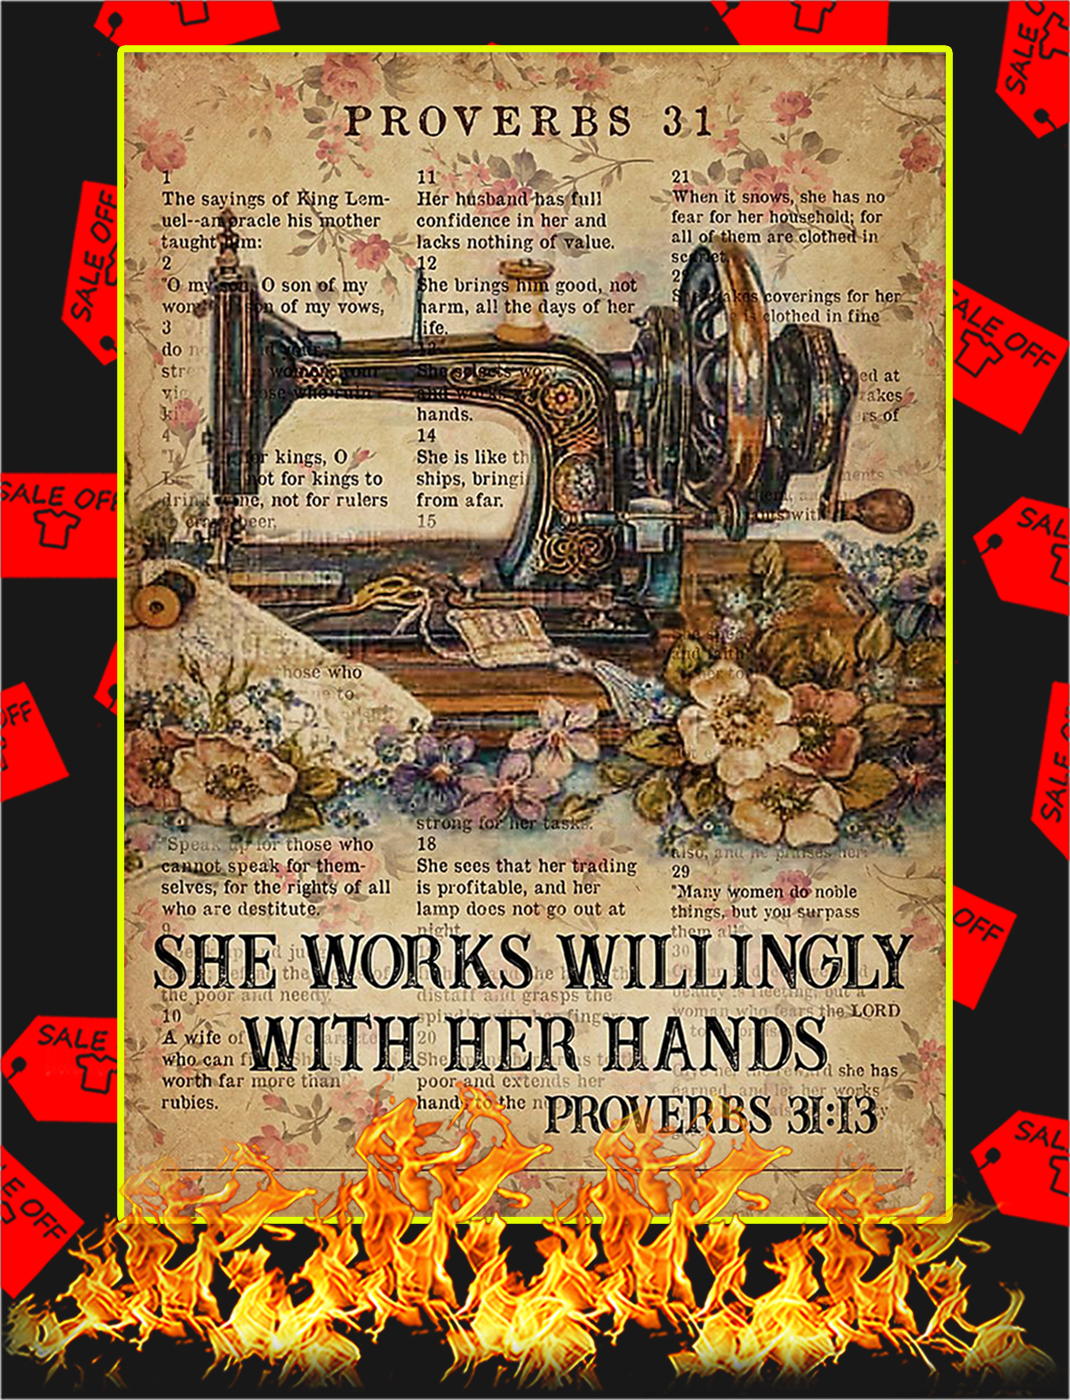 Sewing She works willingly with her hands poster - A1